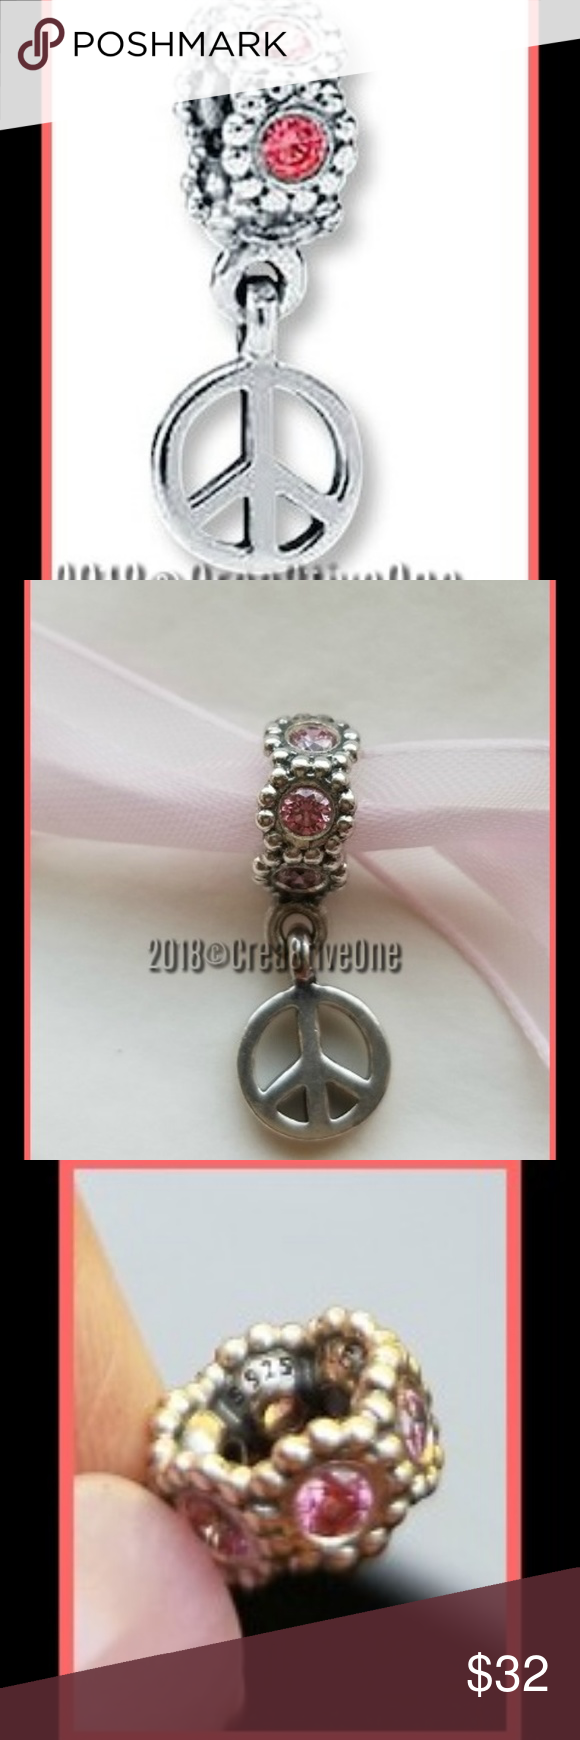 645073f09 Sterling Silver · Atlantic Salmon · AUTHENTIC PANDORA Peace Dangle Charm  #790516CZS GENTLY USED - Dangle PEACE Charm - Crafted in